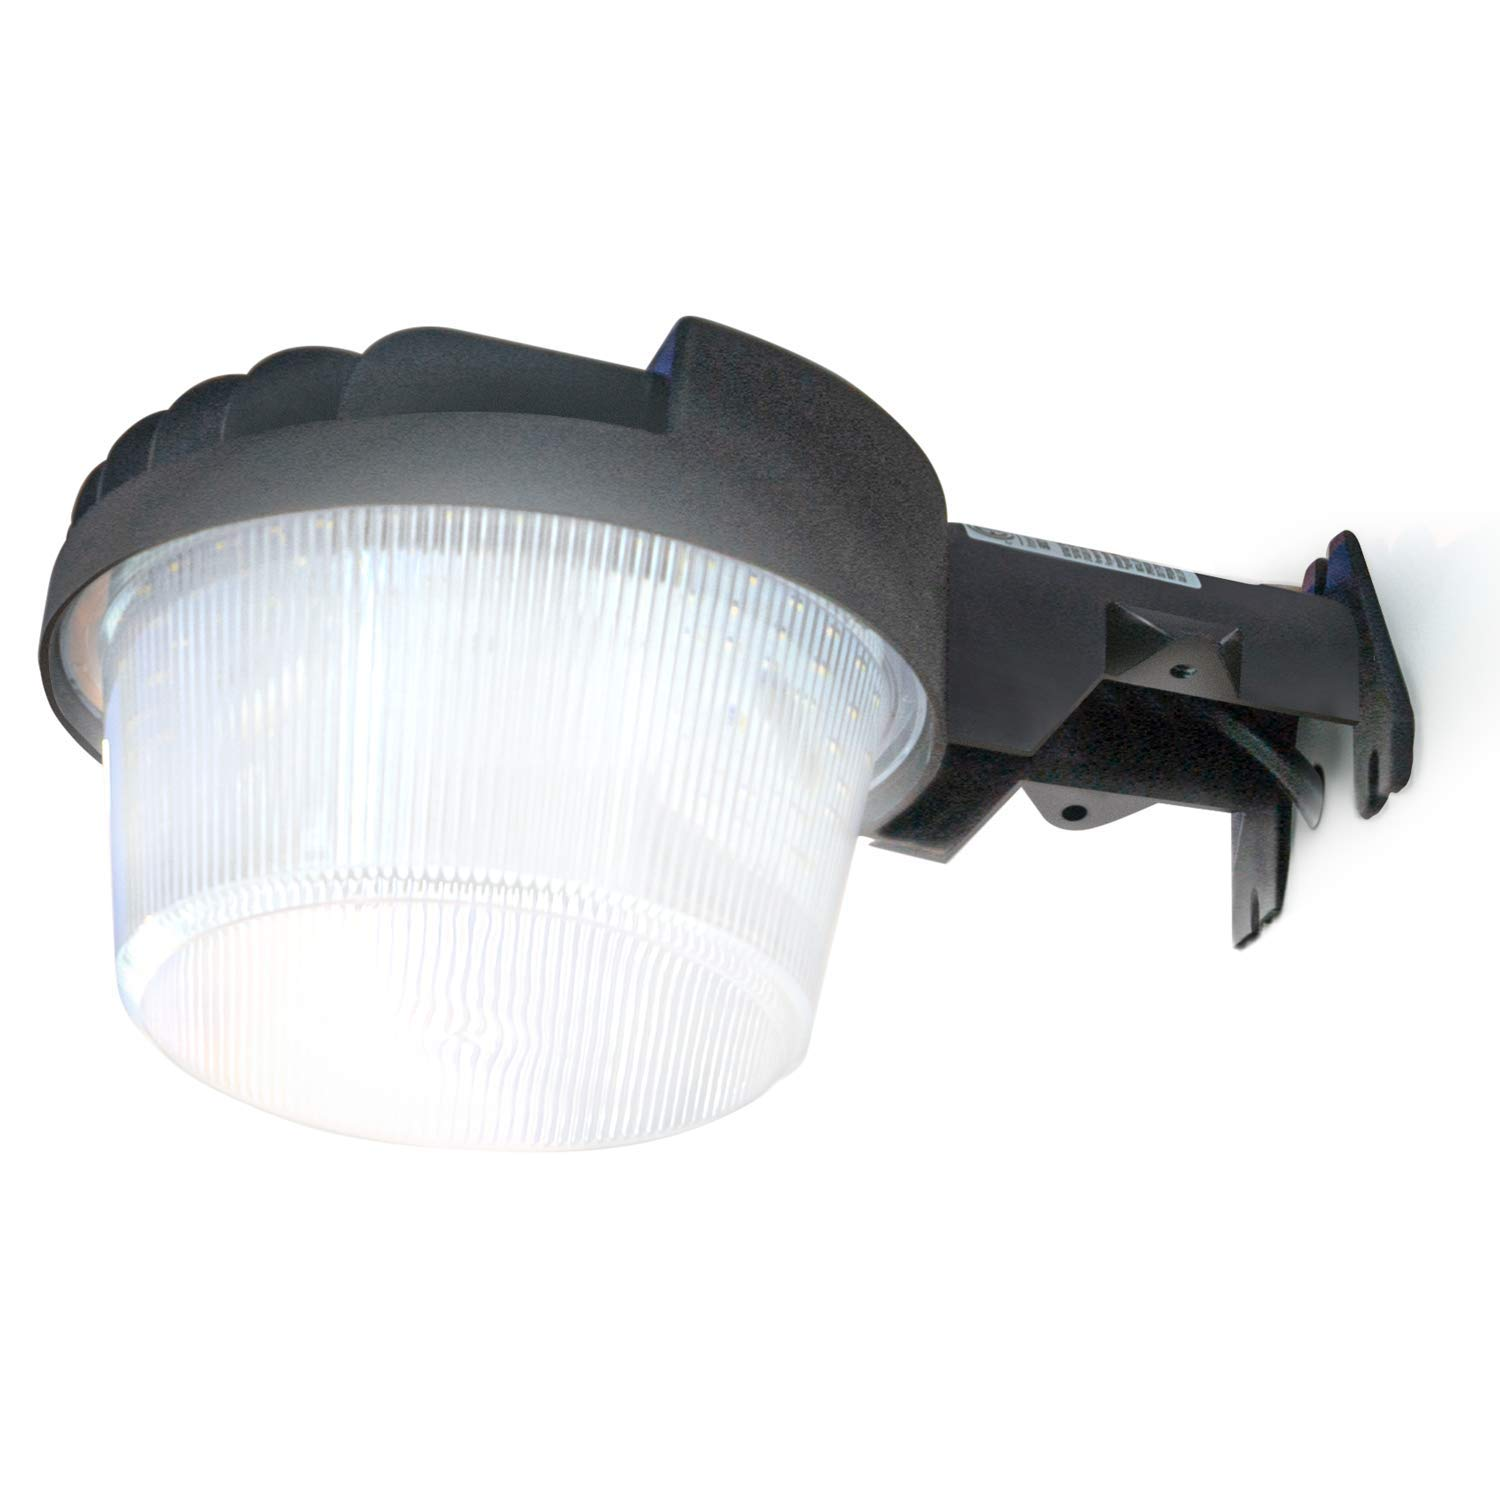 Home Zone Security Led Wall Pack Light Outdoor Dusk To Dawn Ultra Bright 3000k Warm Led